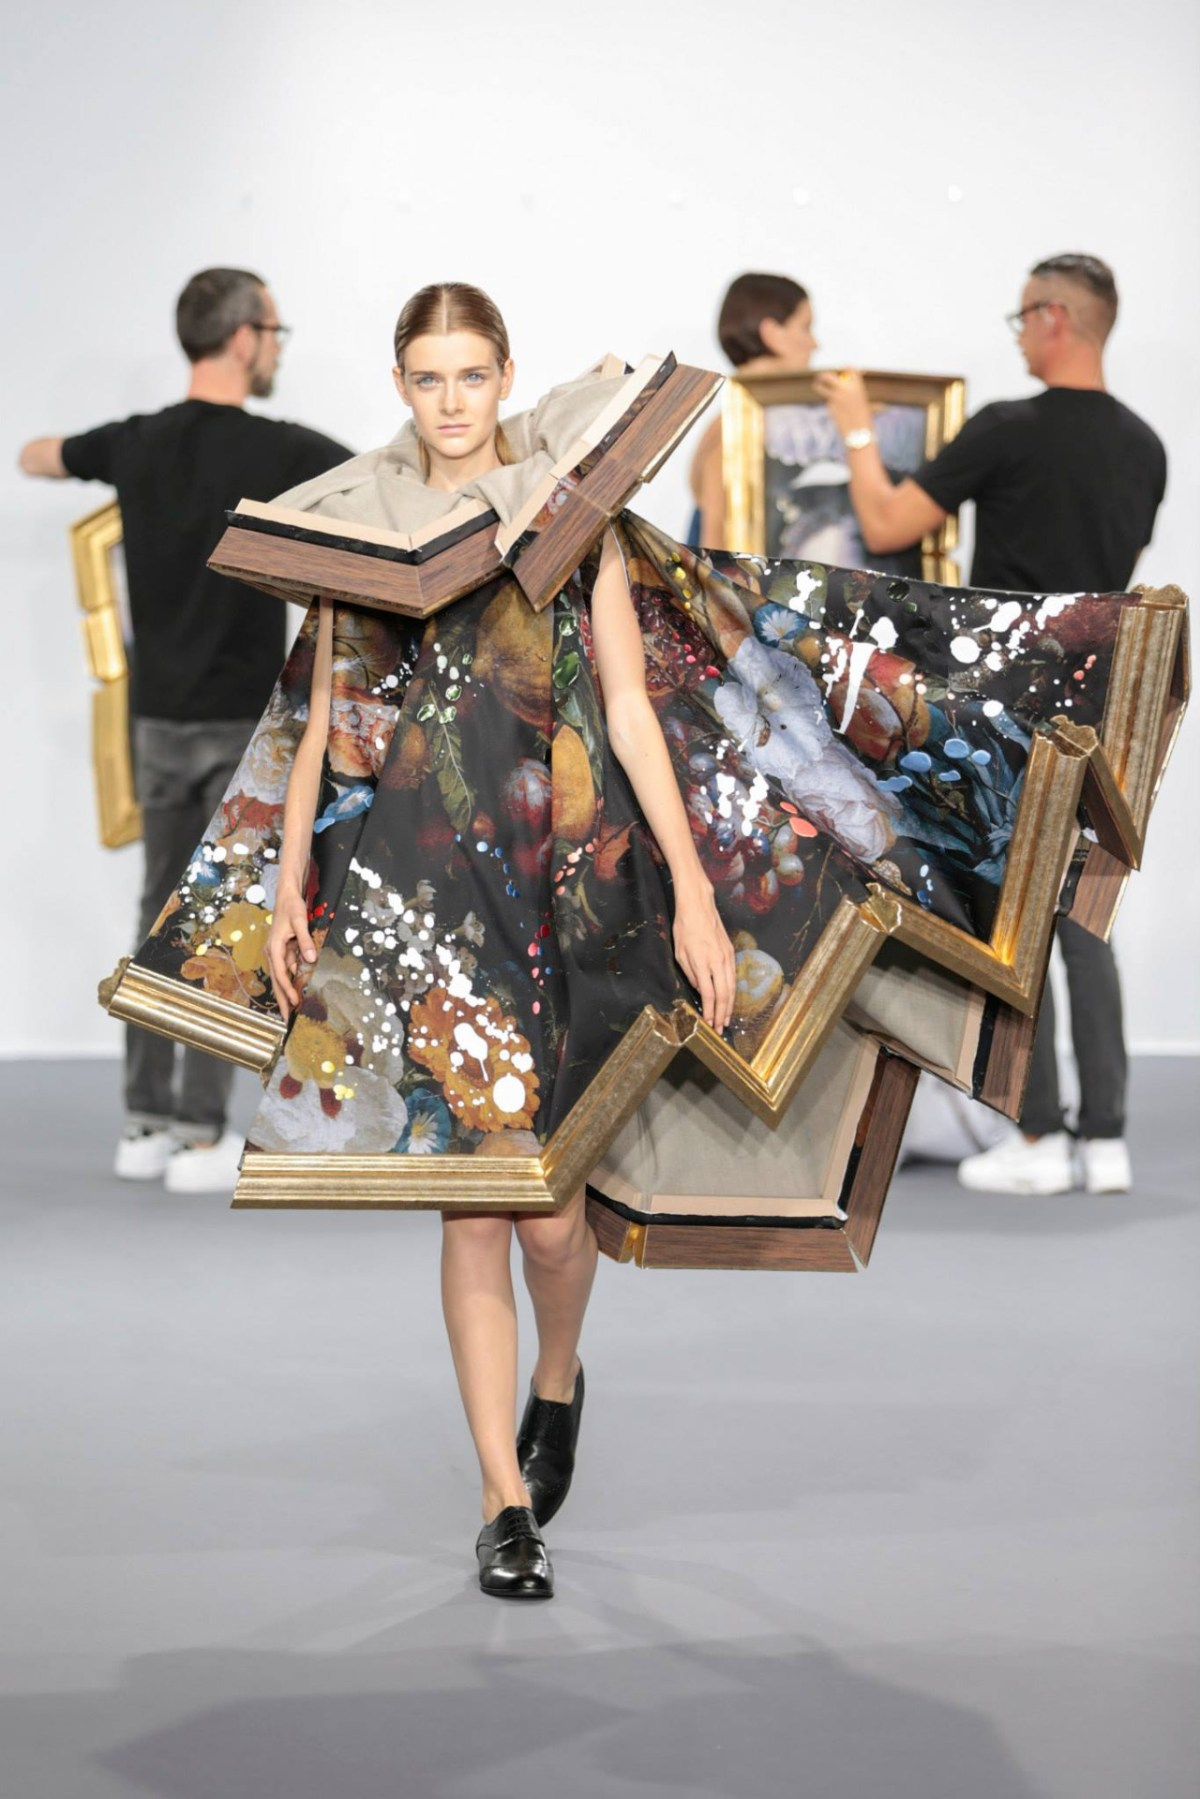 framed-painting-clothing-by-duthc-designer-viktor-and-rolf-06